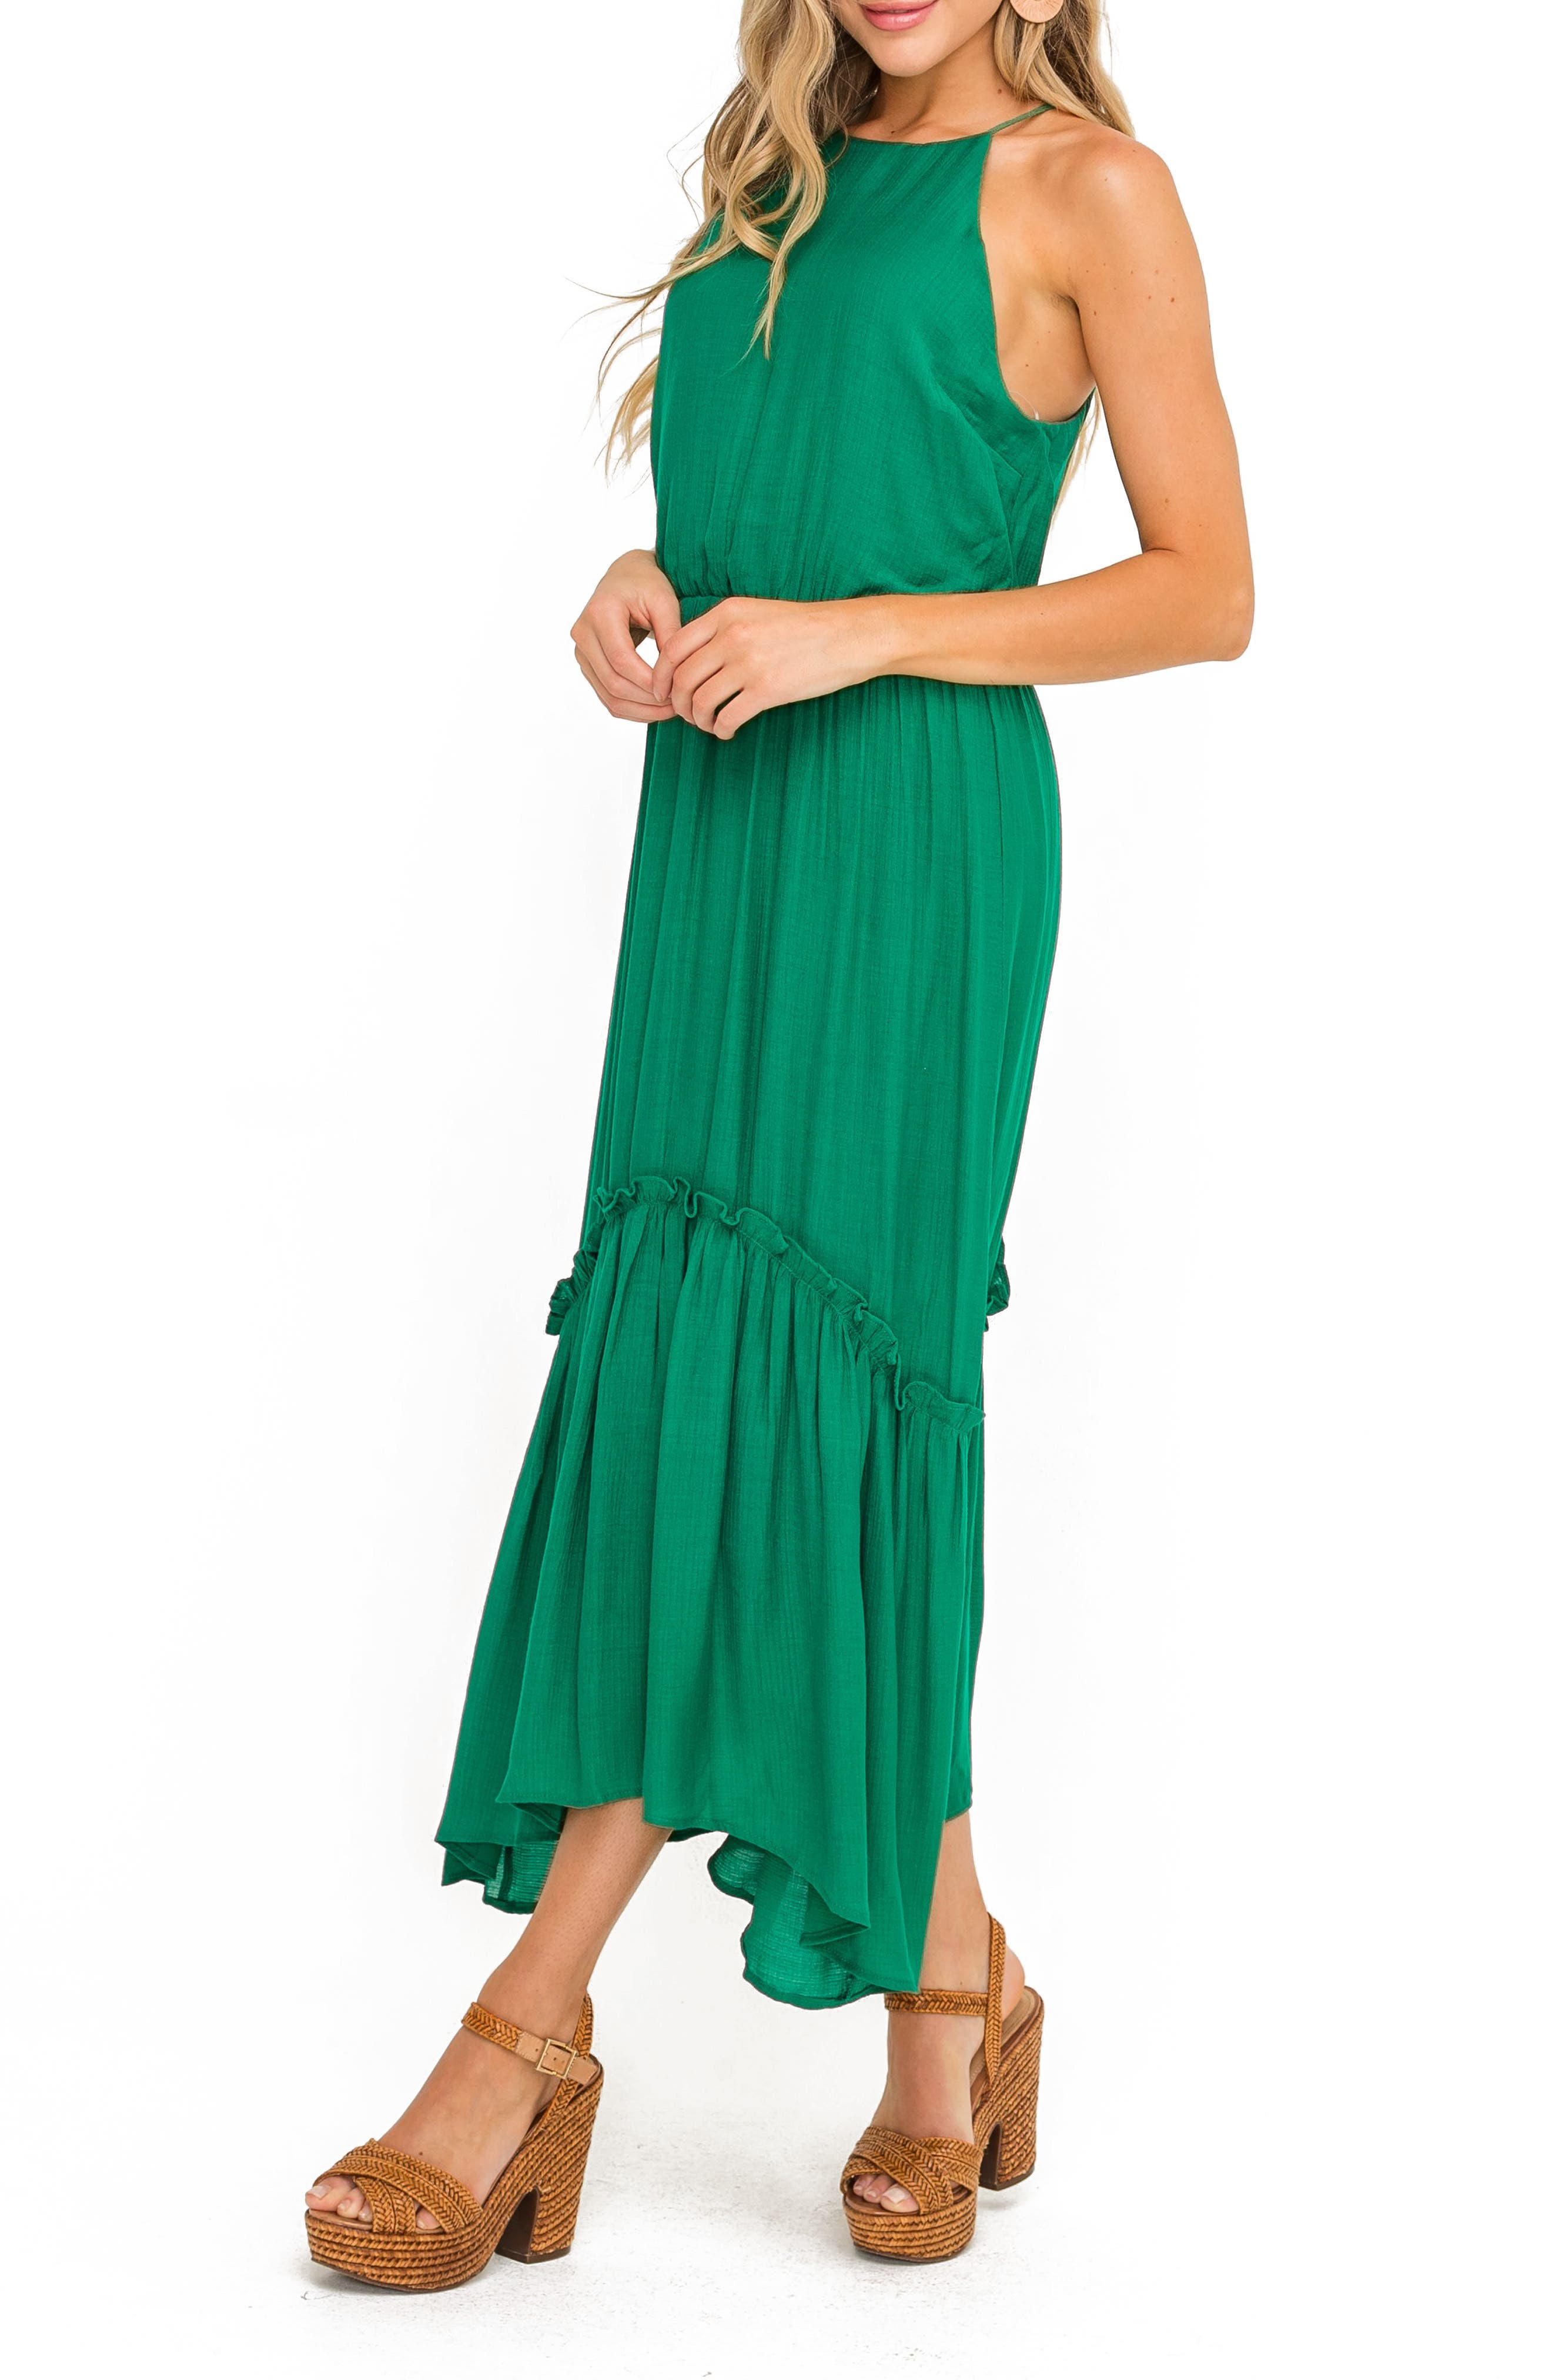 A ruffled skirt accentuates the shark-bite hem of a fresh and breezy maxi dress topped with a halter neck. Style Name: All In Favor Halter Maxi Dress. Style Number: 6031984. Available in stores.